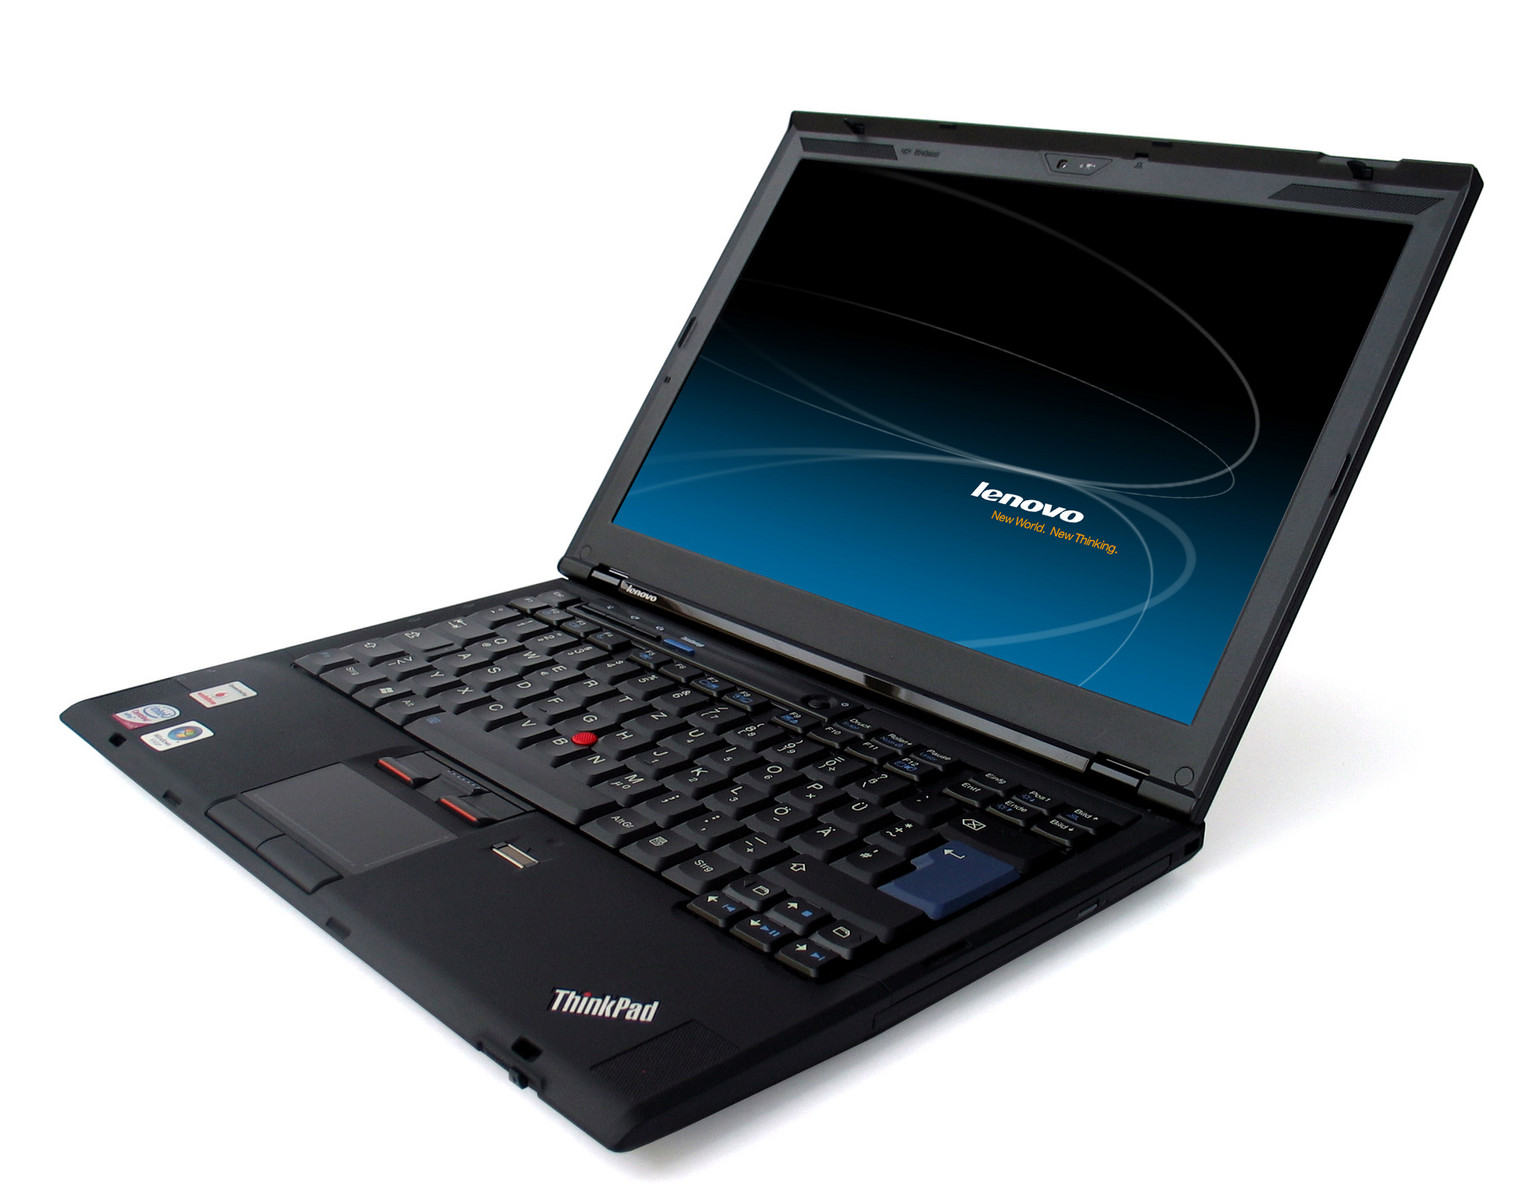 Lenovo Thinkpad X300 Notebookcheck Org